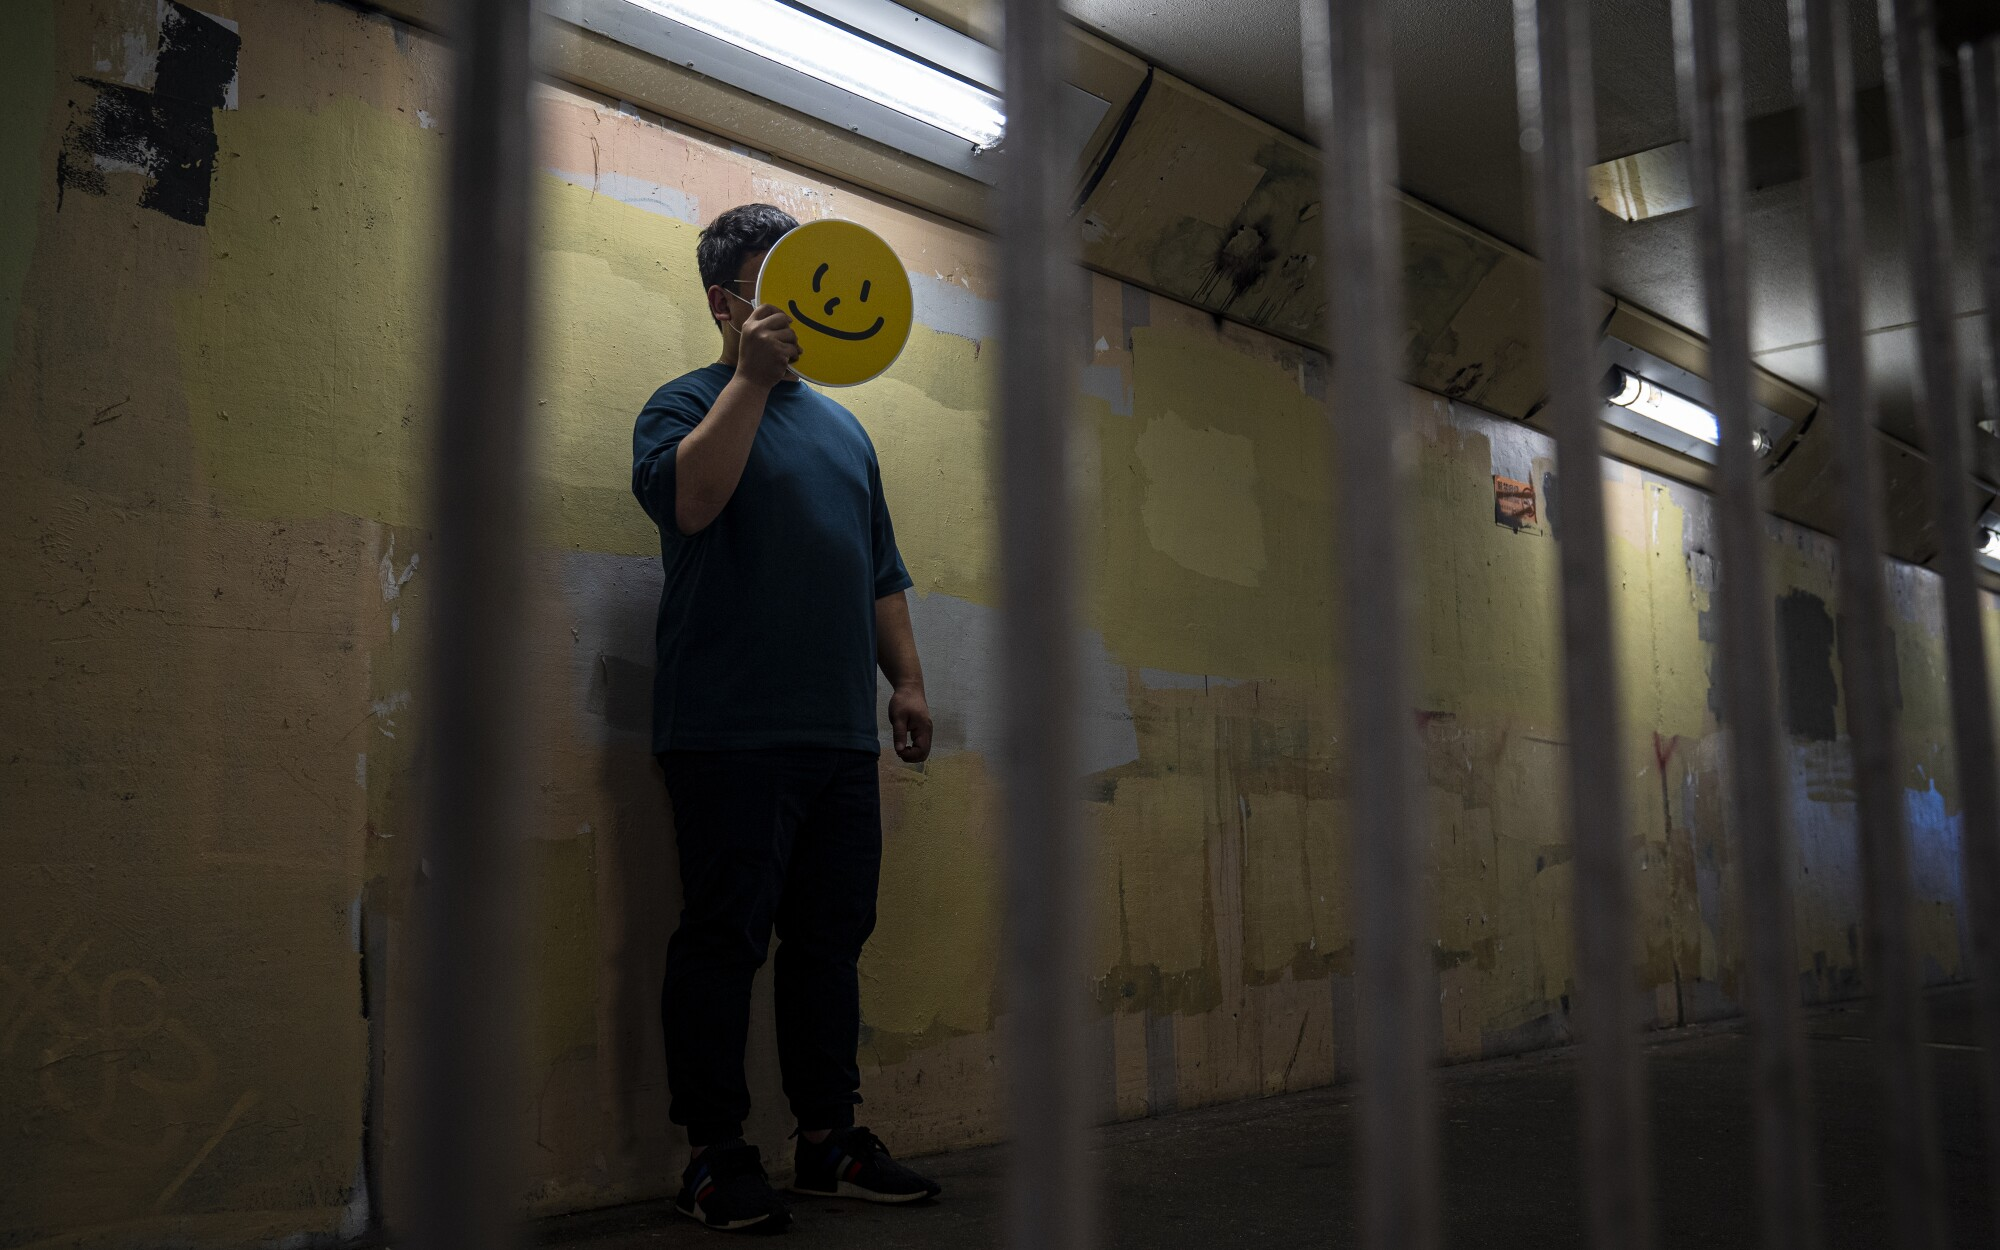 A man holds a yellow smiley face sign in front of his face in a dimly lit hallway, seen through metal bars